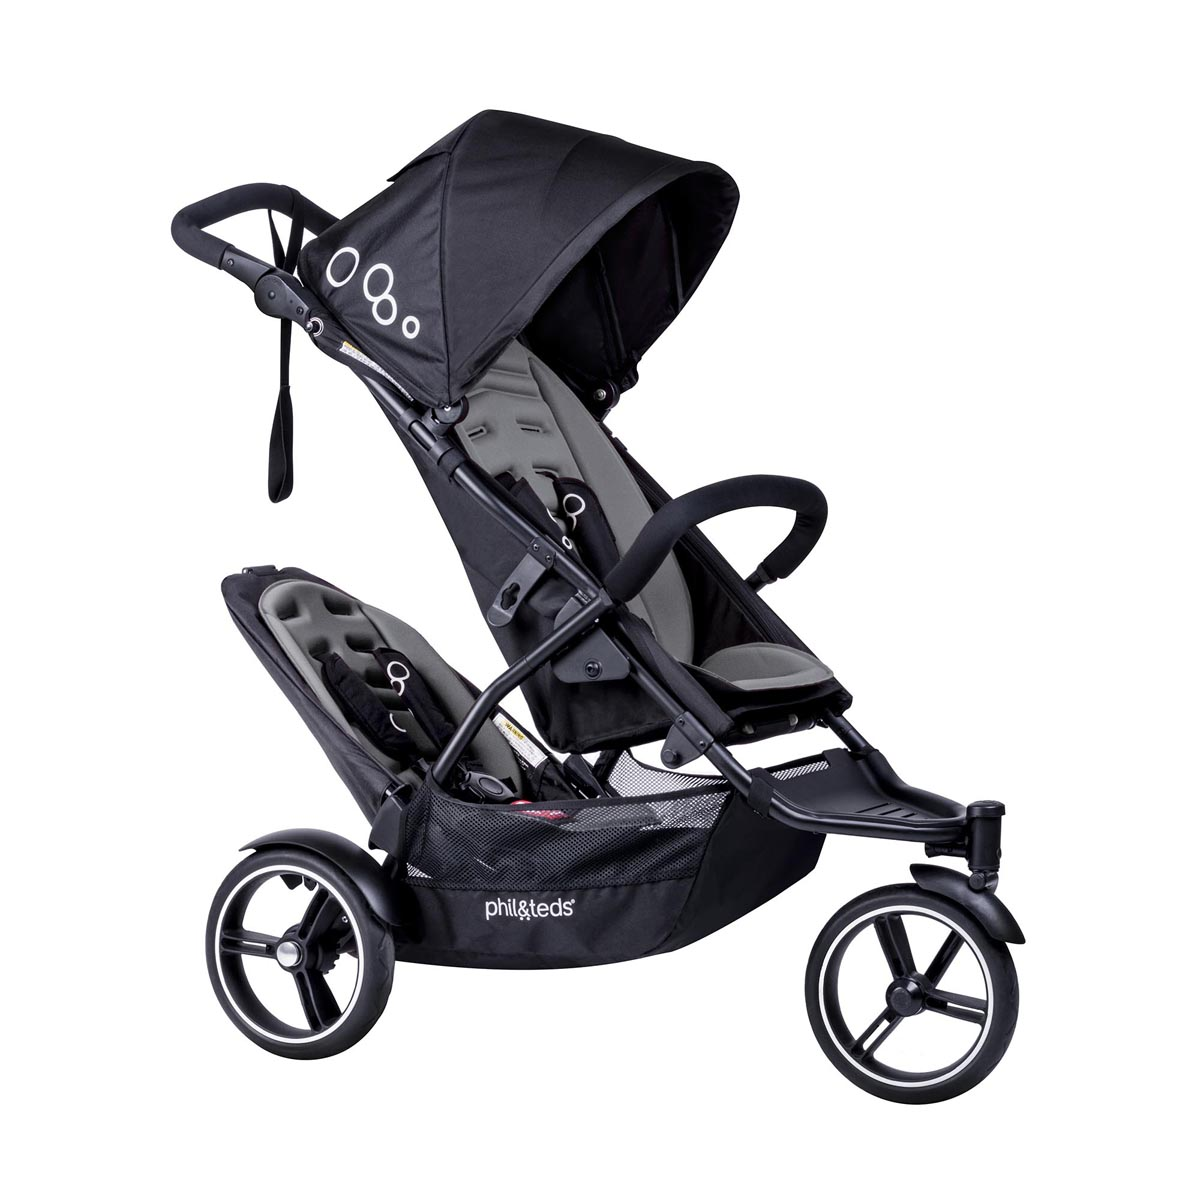 phil-teds-dot-compact-double-stroller-with-double-kit-in-grey.jpg